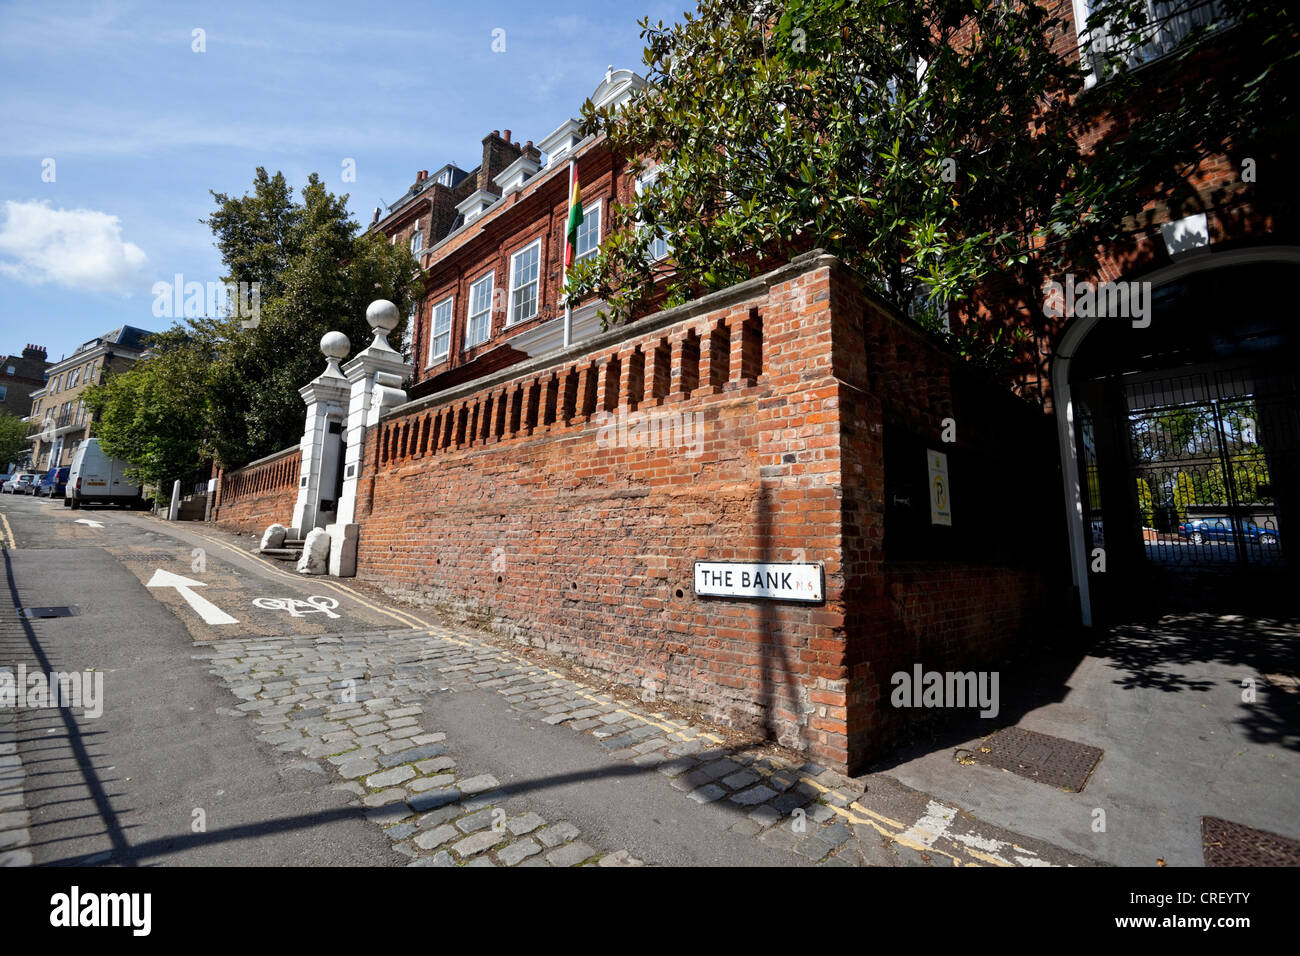 Cromwell House, Ghana High Commission, The Bank, Highgate Hill, N6, London, England, UK Stock Photo